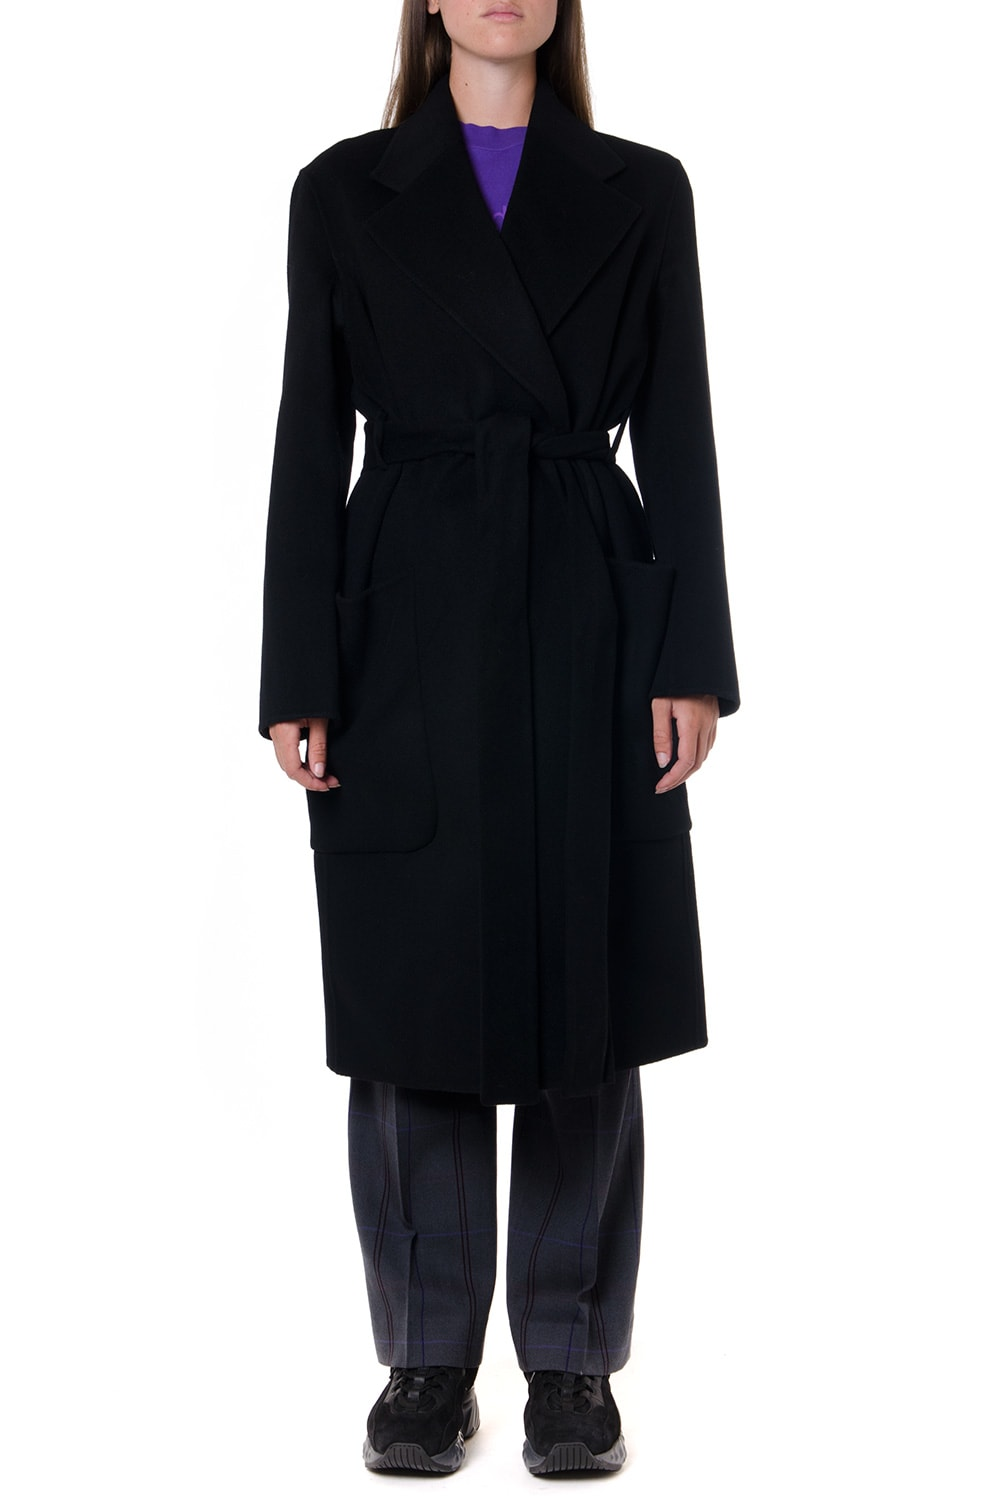 Acne Studios Black Wool & Cashmere Coat